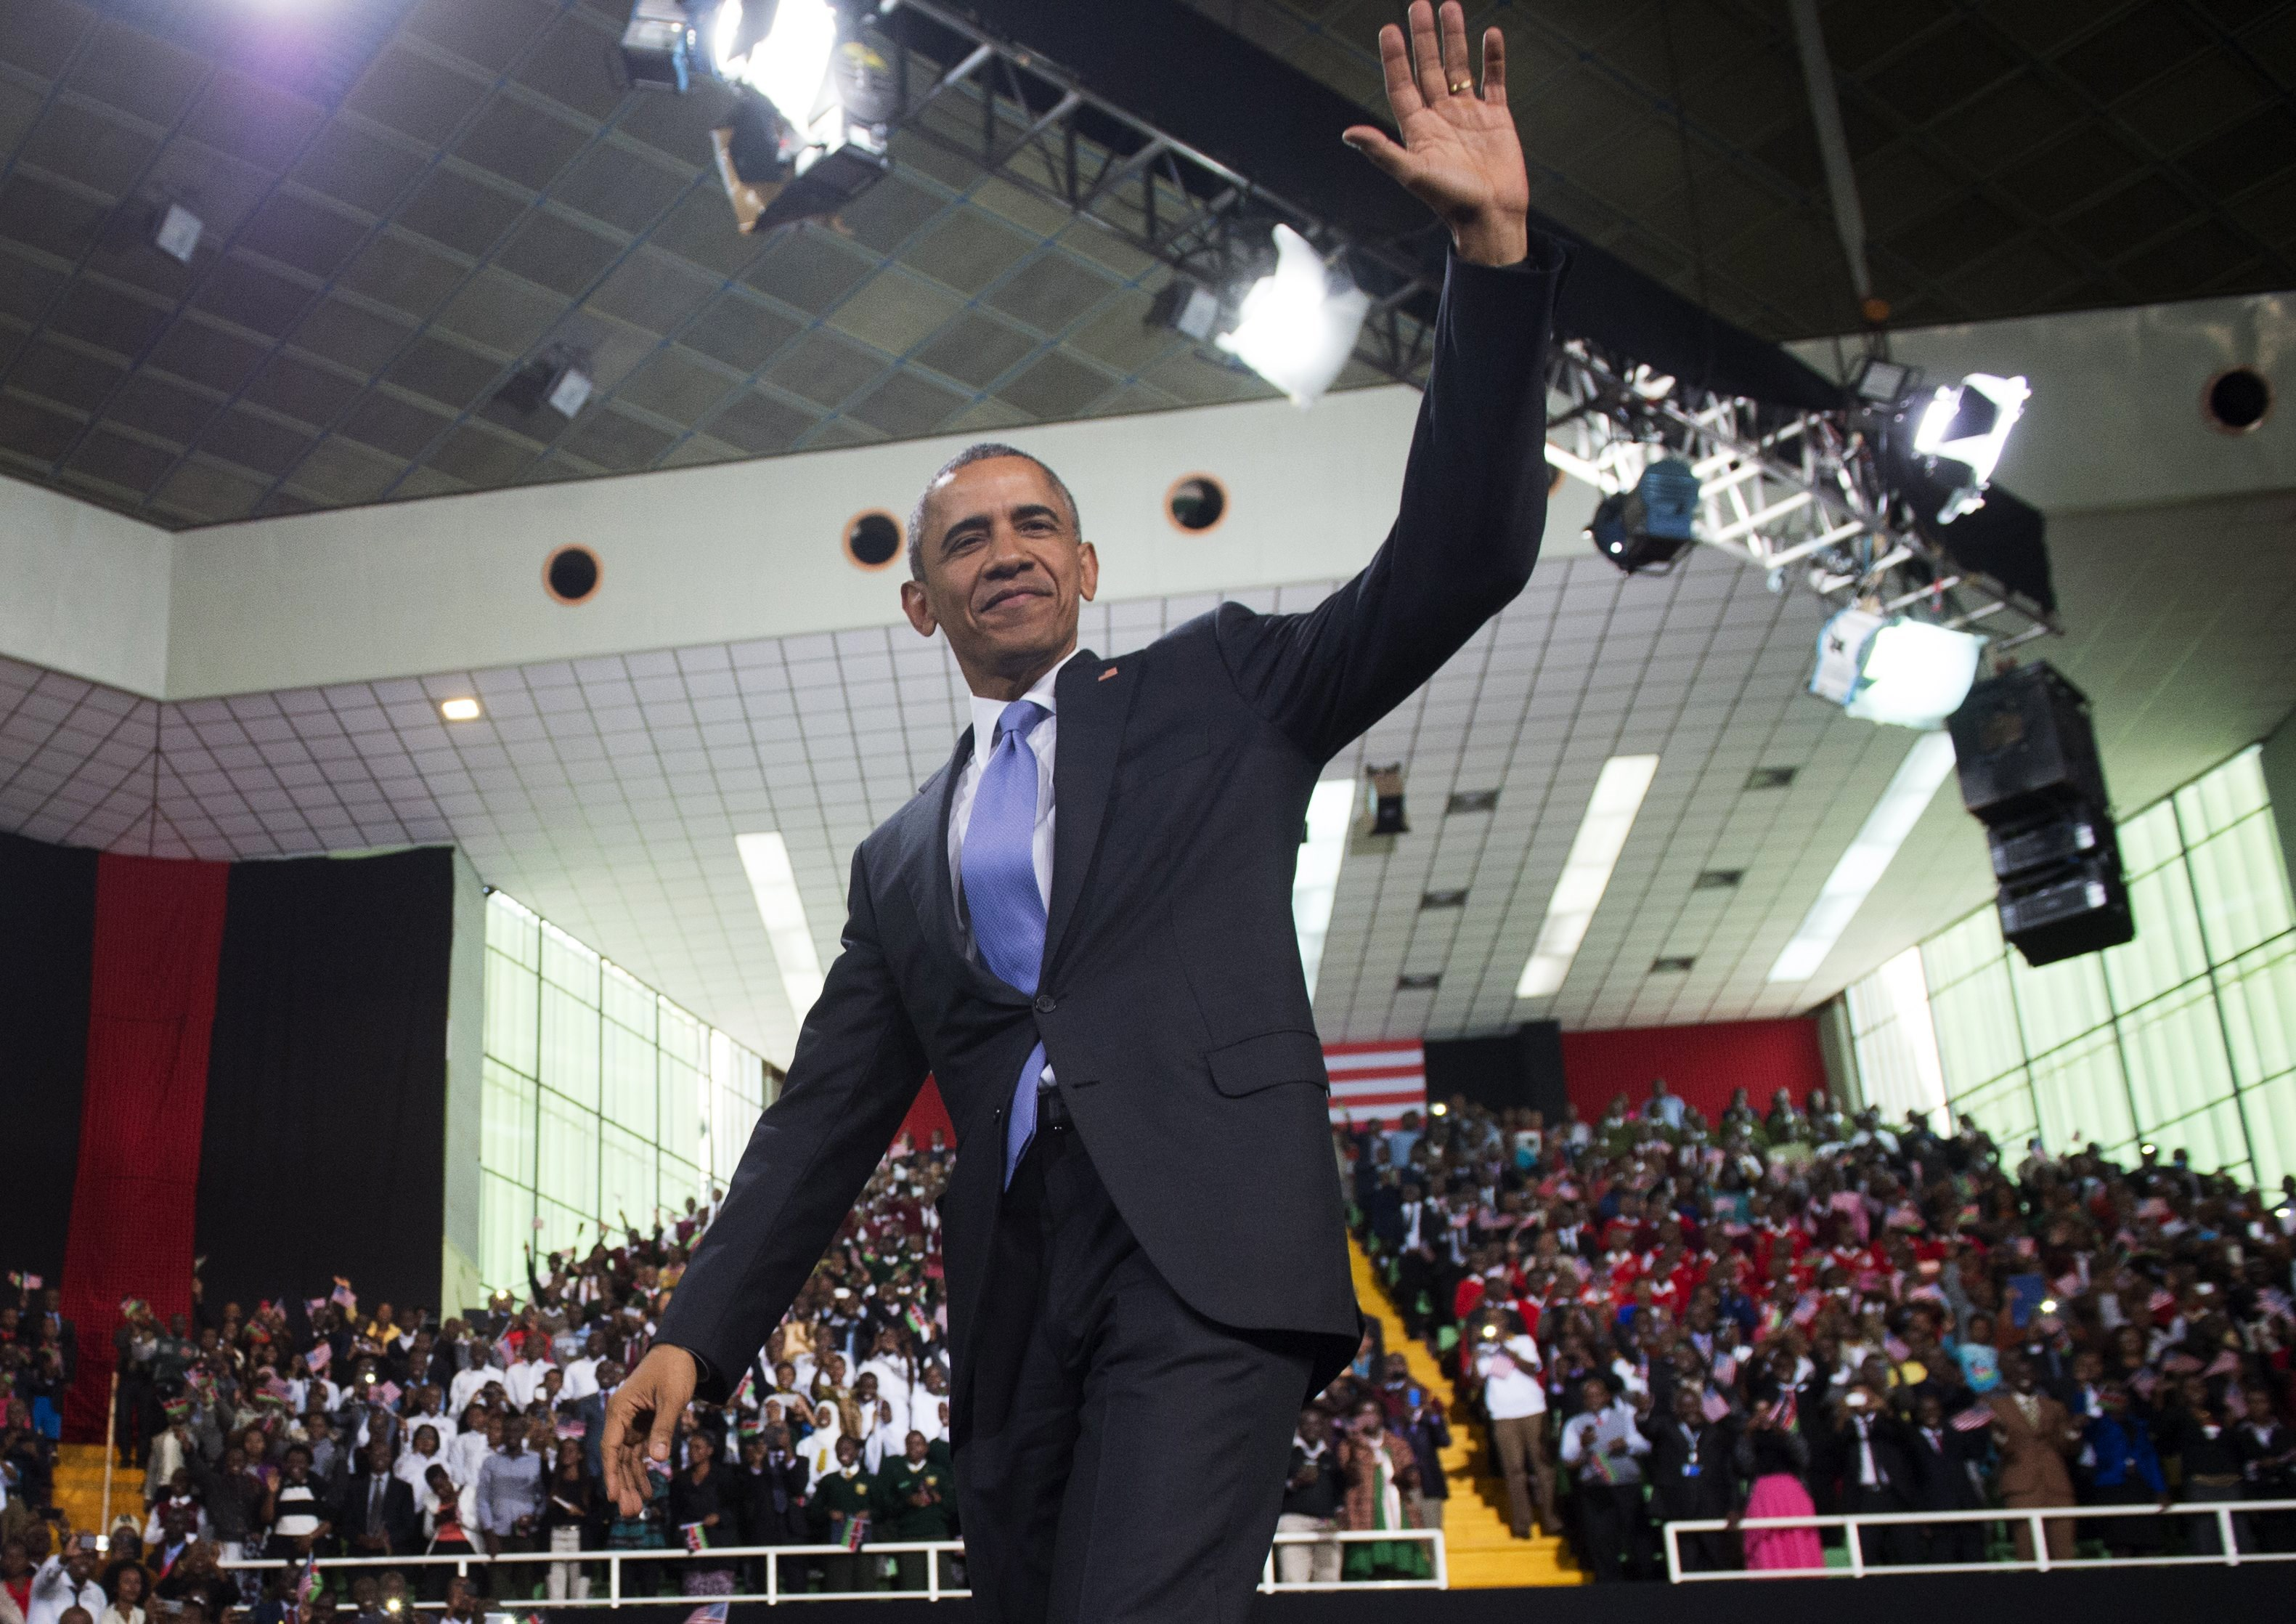 US President Barack Obama arrives to speak at Safaricom Indoor Arena in Nairobi on July 26, 2015, during a two-day landmark visit to Kenya